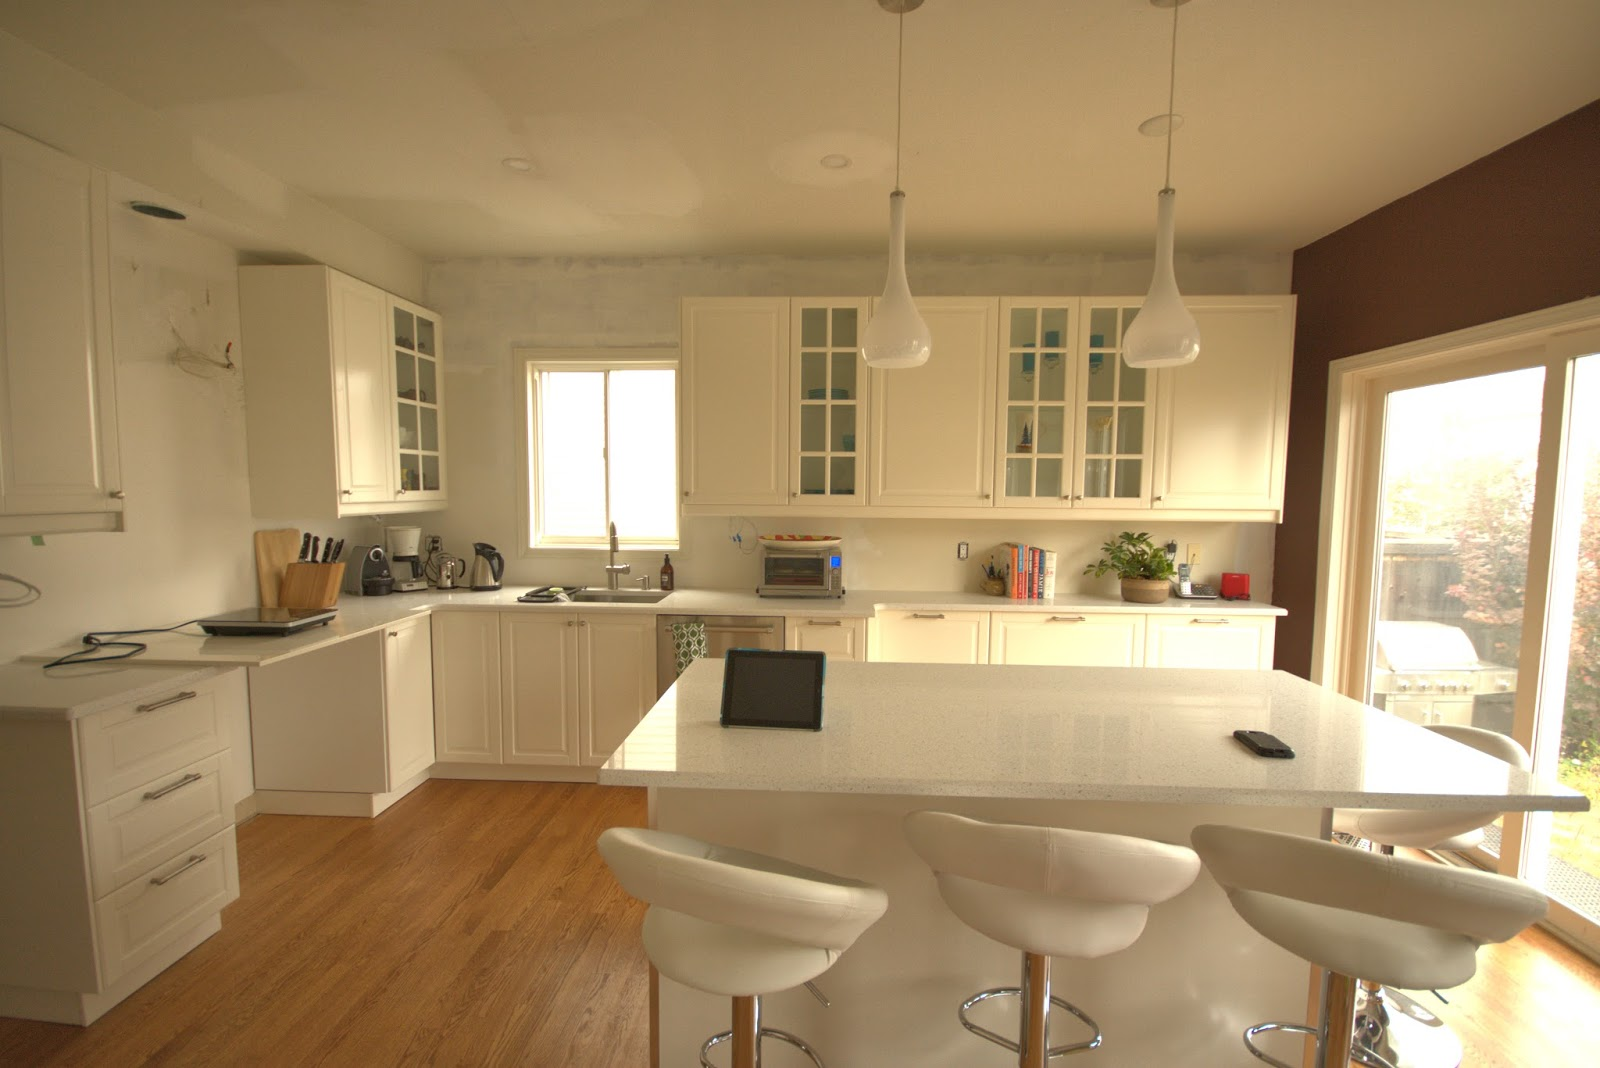 Complete Used Kitchens For Sale West Midlands